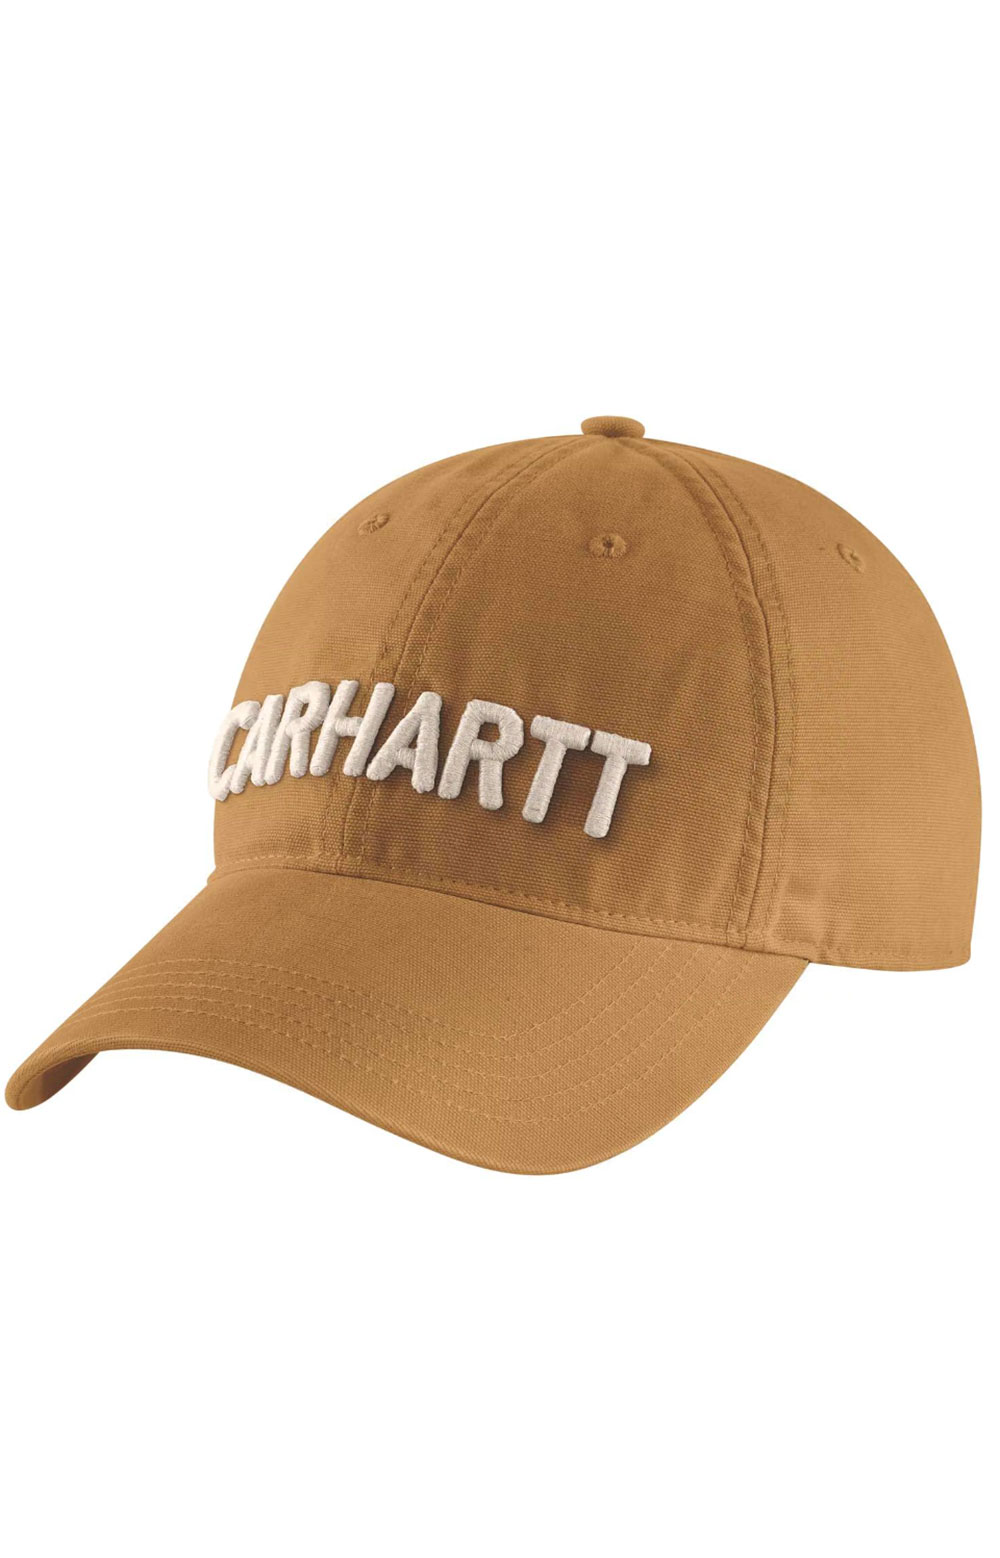 (103605) Odessa Graphic Hat - Carhartt Brown